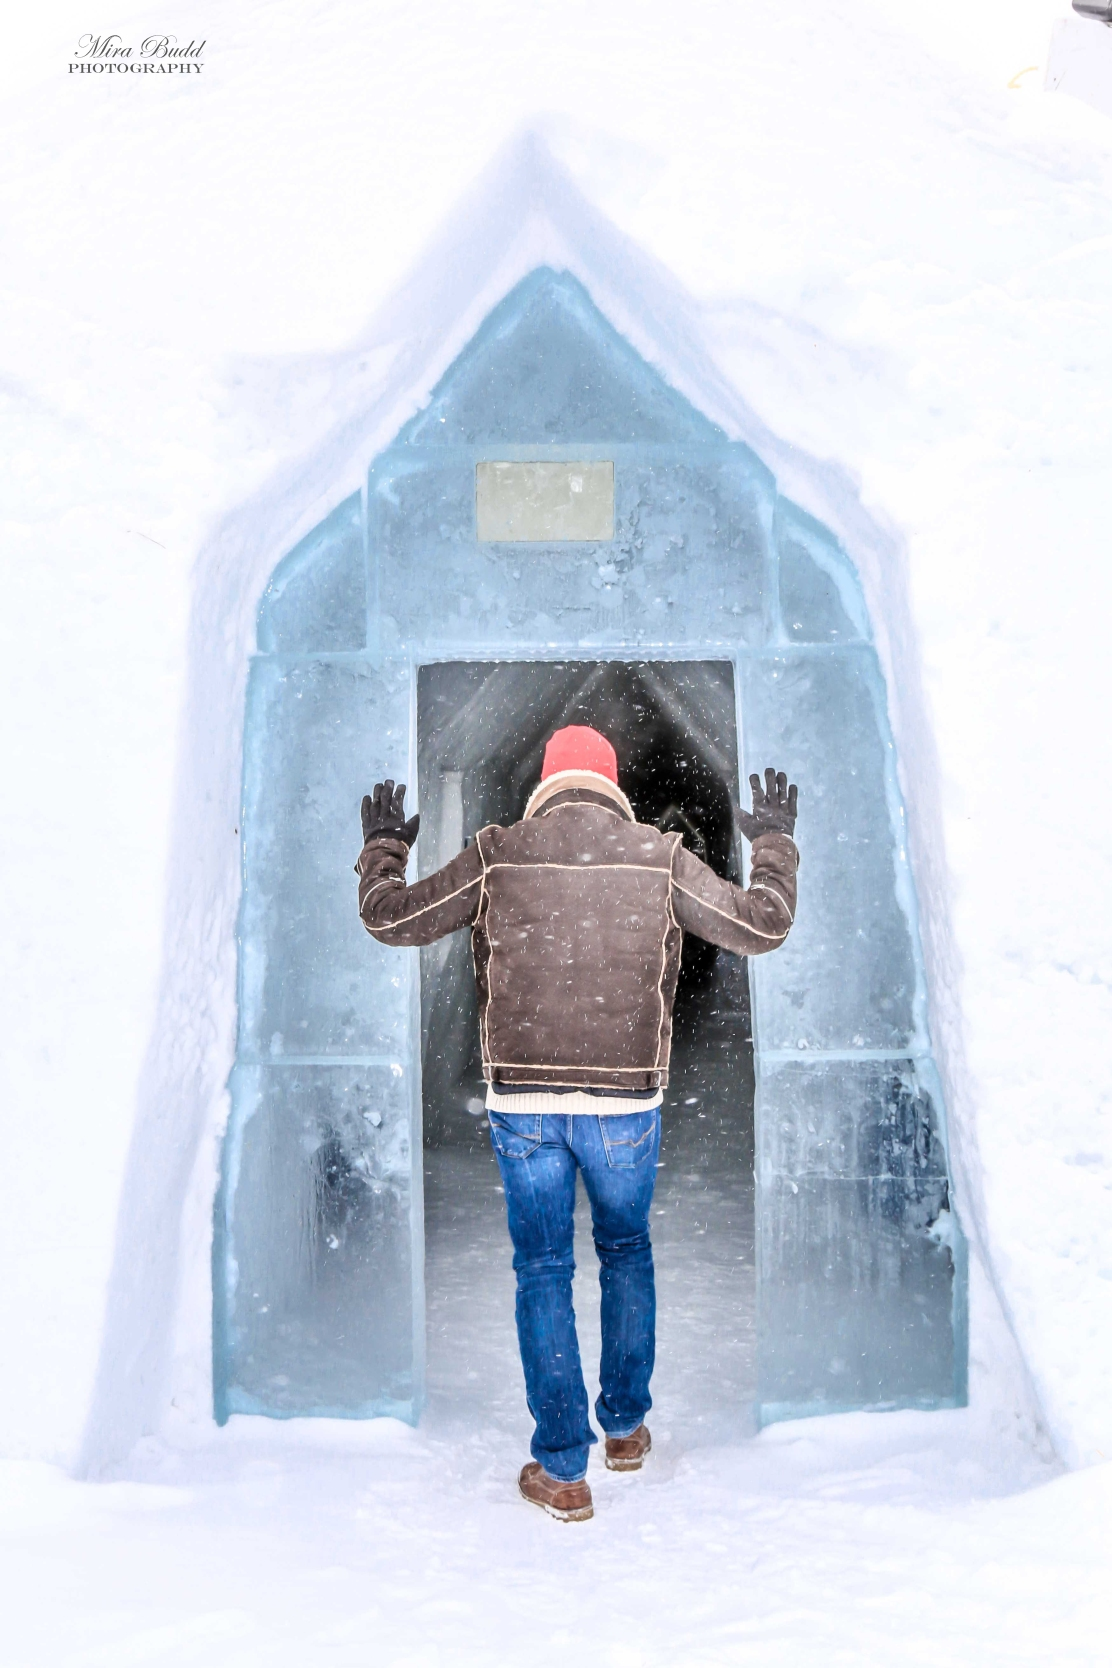 Things to do in winter in Quebec City, Things to See in Quebec City, Places to see in Quebec, Amazing Hotels in Canada, Unique Hotels in The World, Beautiful Places in the World, Ice Sculptures in Quebec, Hôtel de Glace de Québec, Ice Hotel Quebec City,